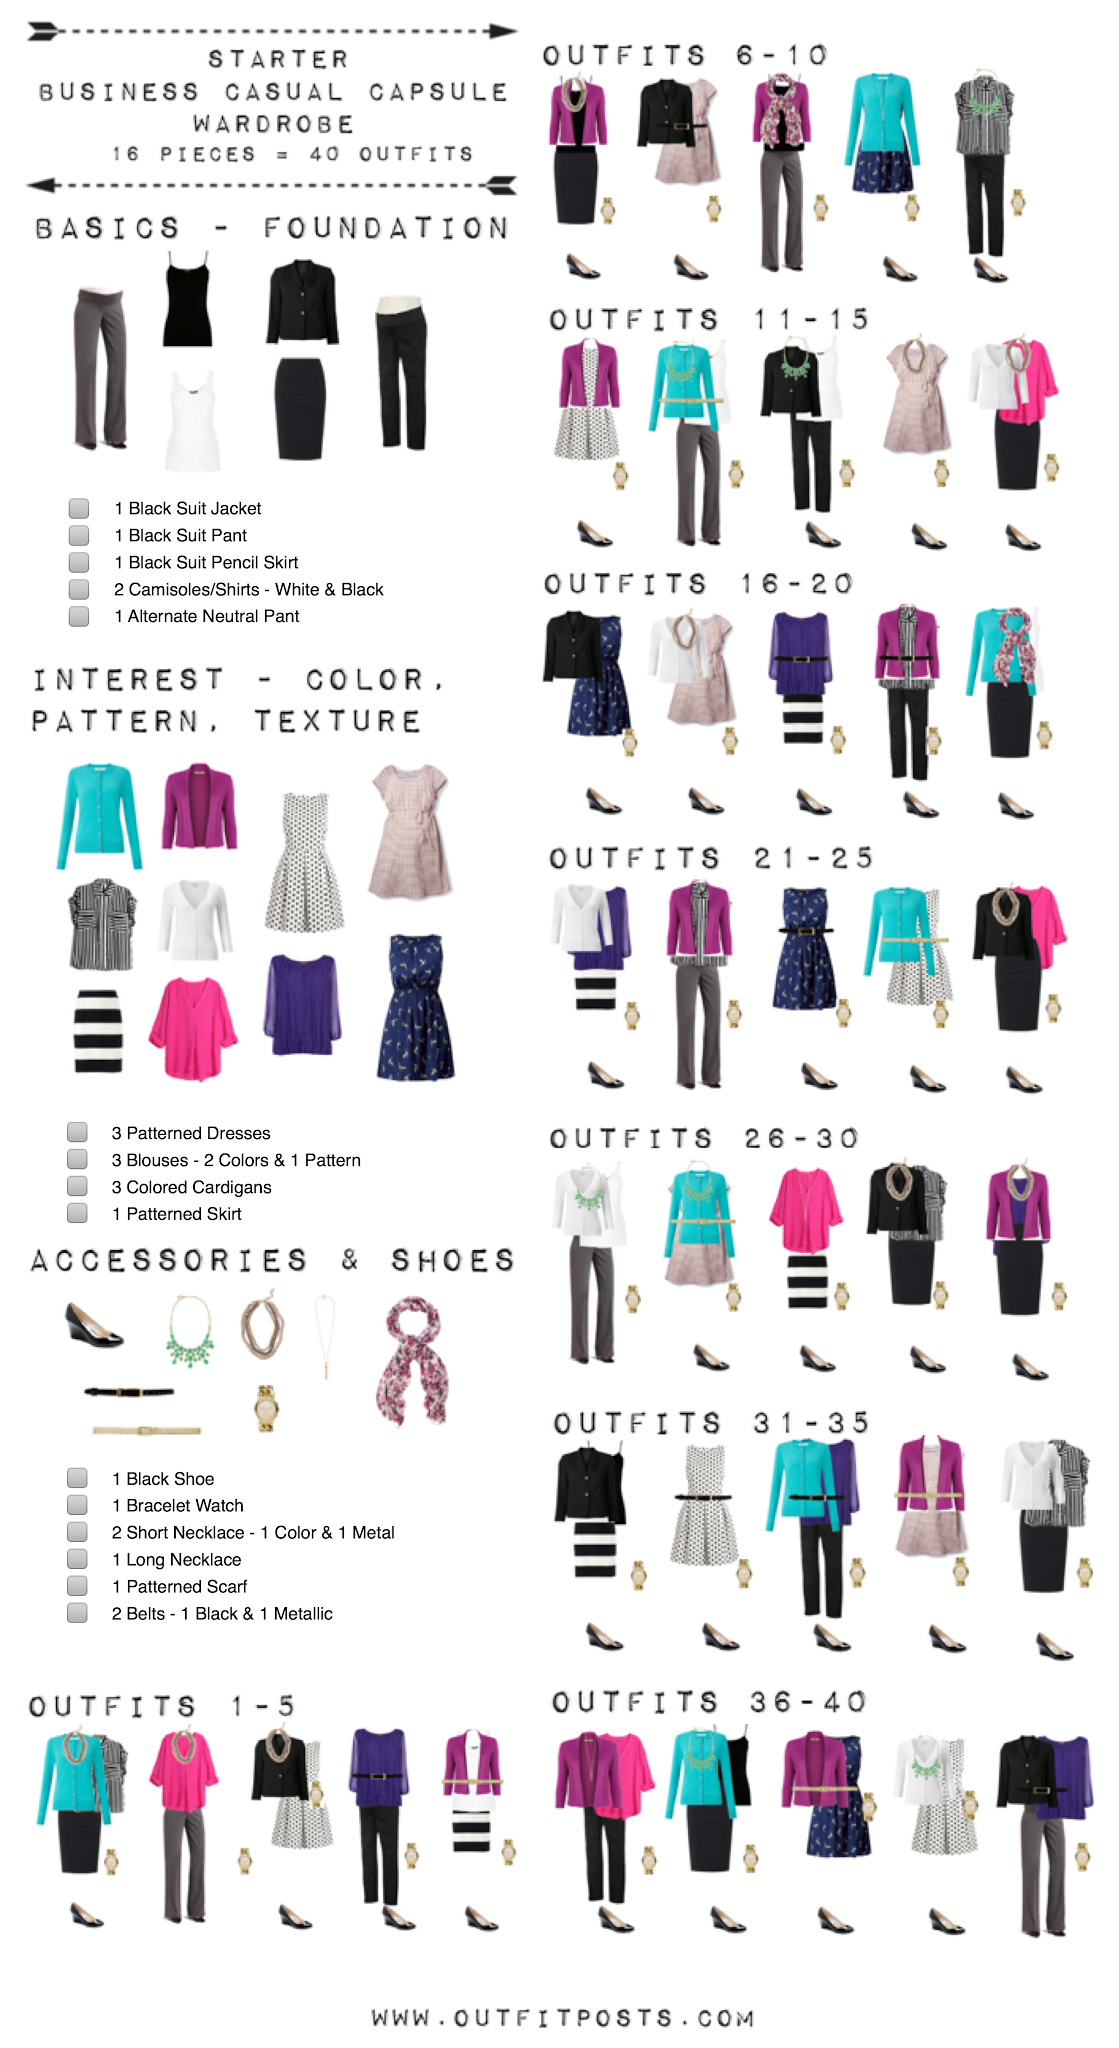 starter business casual capsule wardrobe checklist. Black Bedroom Furniture Sets. Home Design Ideas